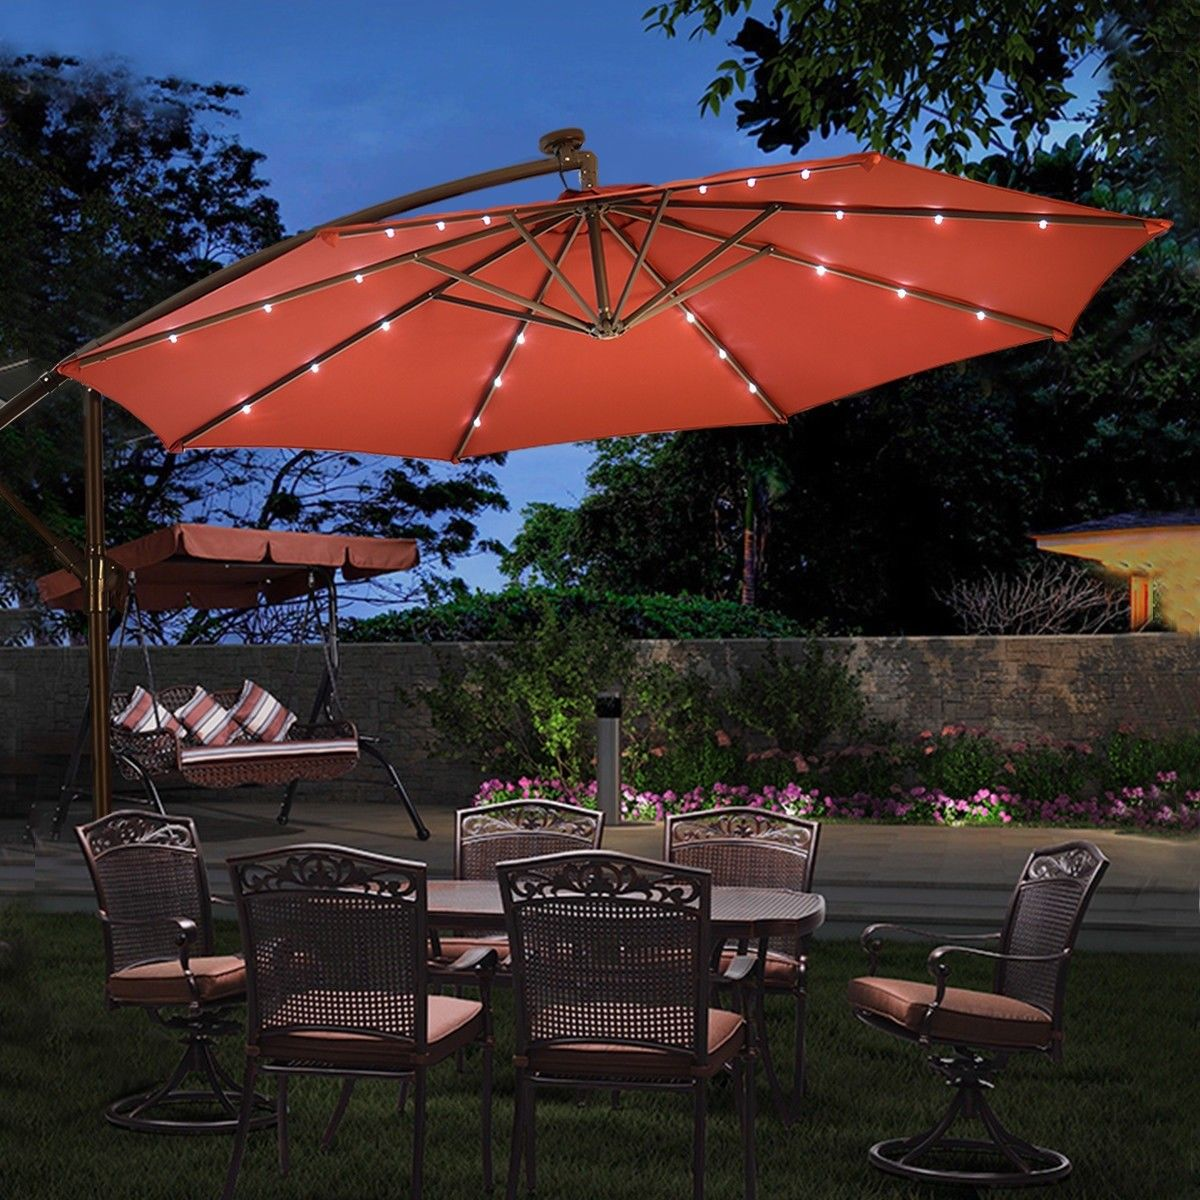 10 Patio Hanging Umbrella Sun Shade With Solar Led Lights Patio Sun Shades Patio Shade Outdoor Backyard